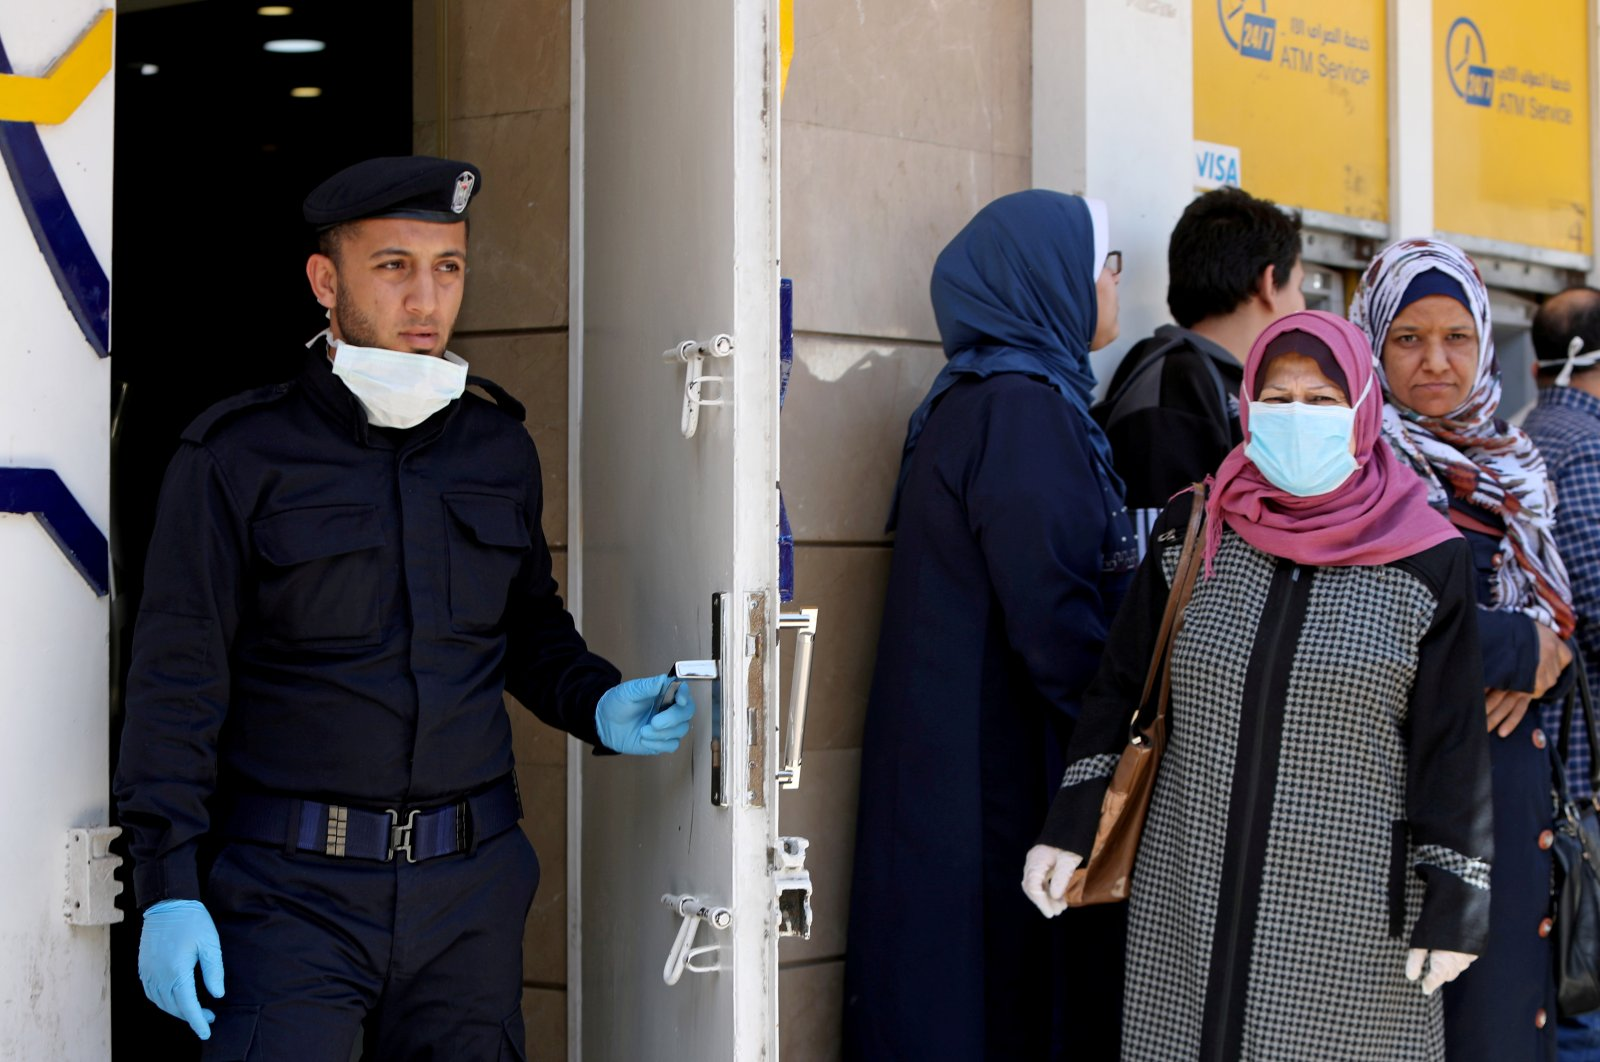 A Palestinian policeman stands guard as a woman, wearing a mask as a precaution against the coronavirus disease, waits with other people outside a bank to withdraw cash, Gaza City, March 29, 2020. (REUTERS Photo)